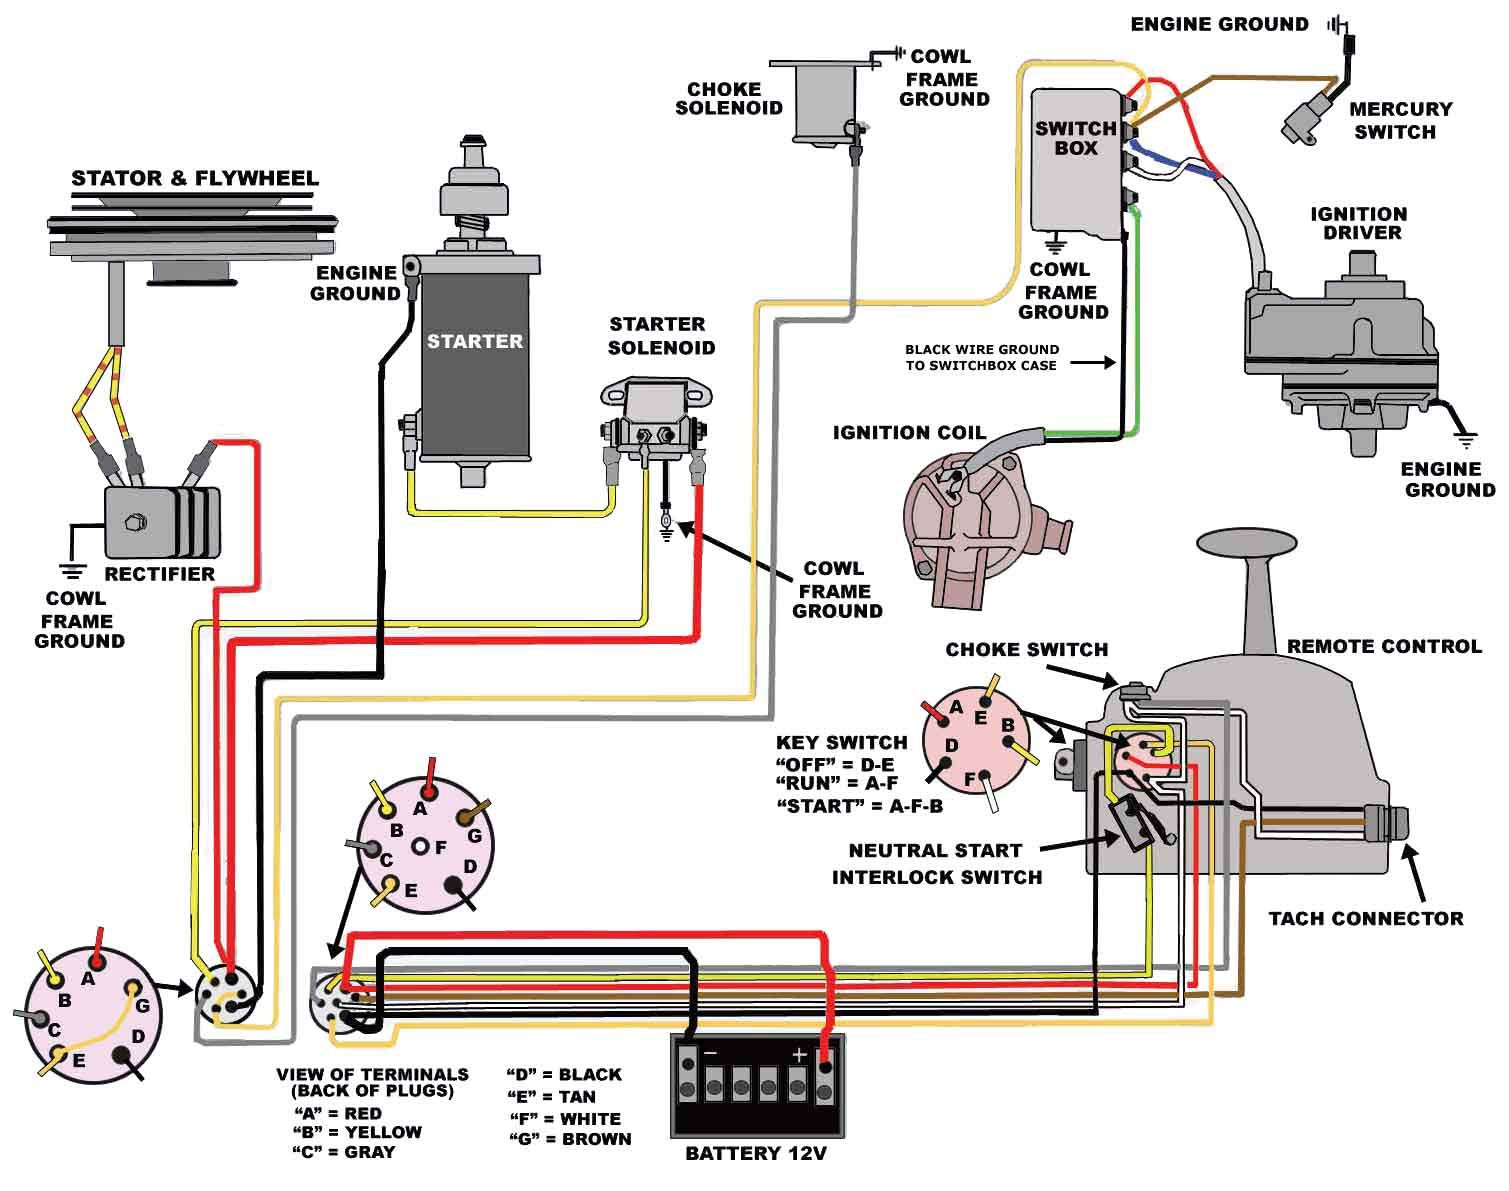 13cfb2d962bcd0c03103625817b7d51d mercury outboard wiring diagram diagram pinterest mercury find wiring diagram for 87 ford f 150 at honlapkeszites.co